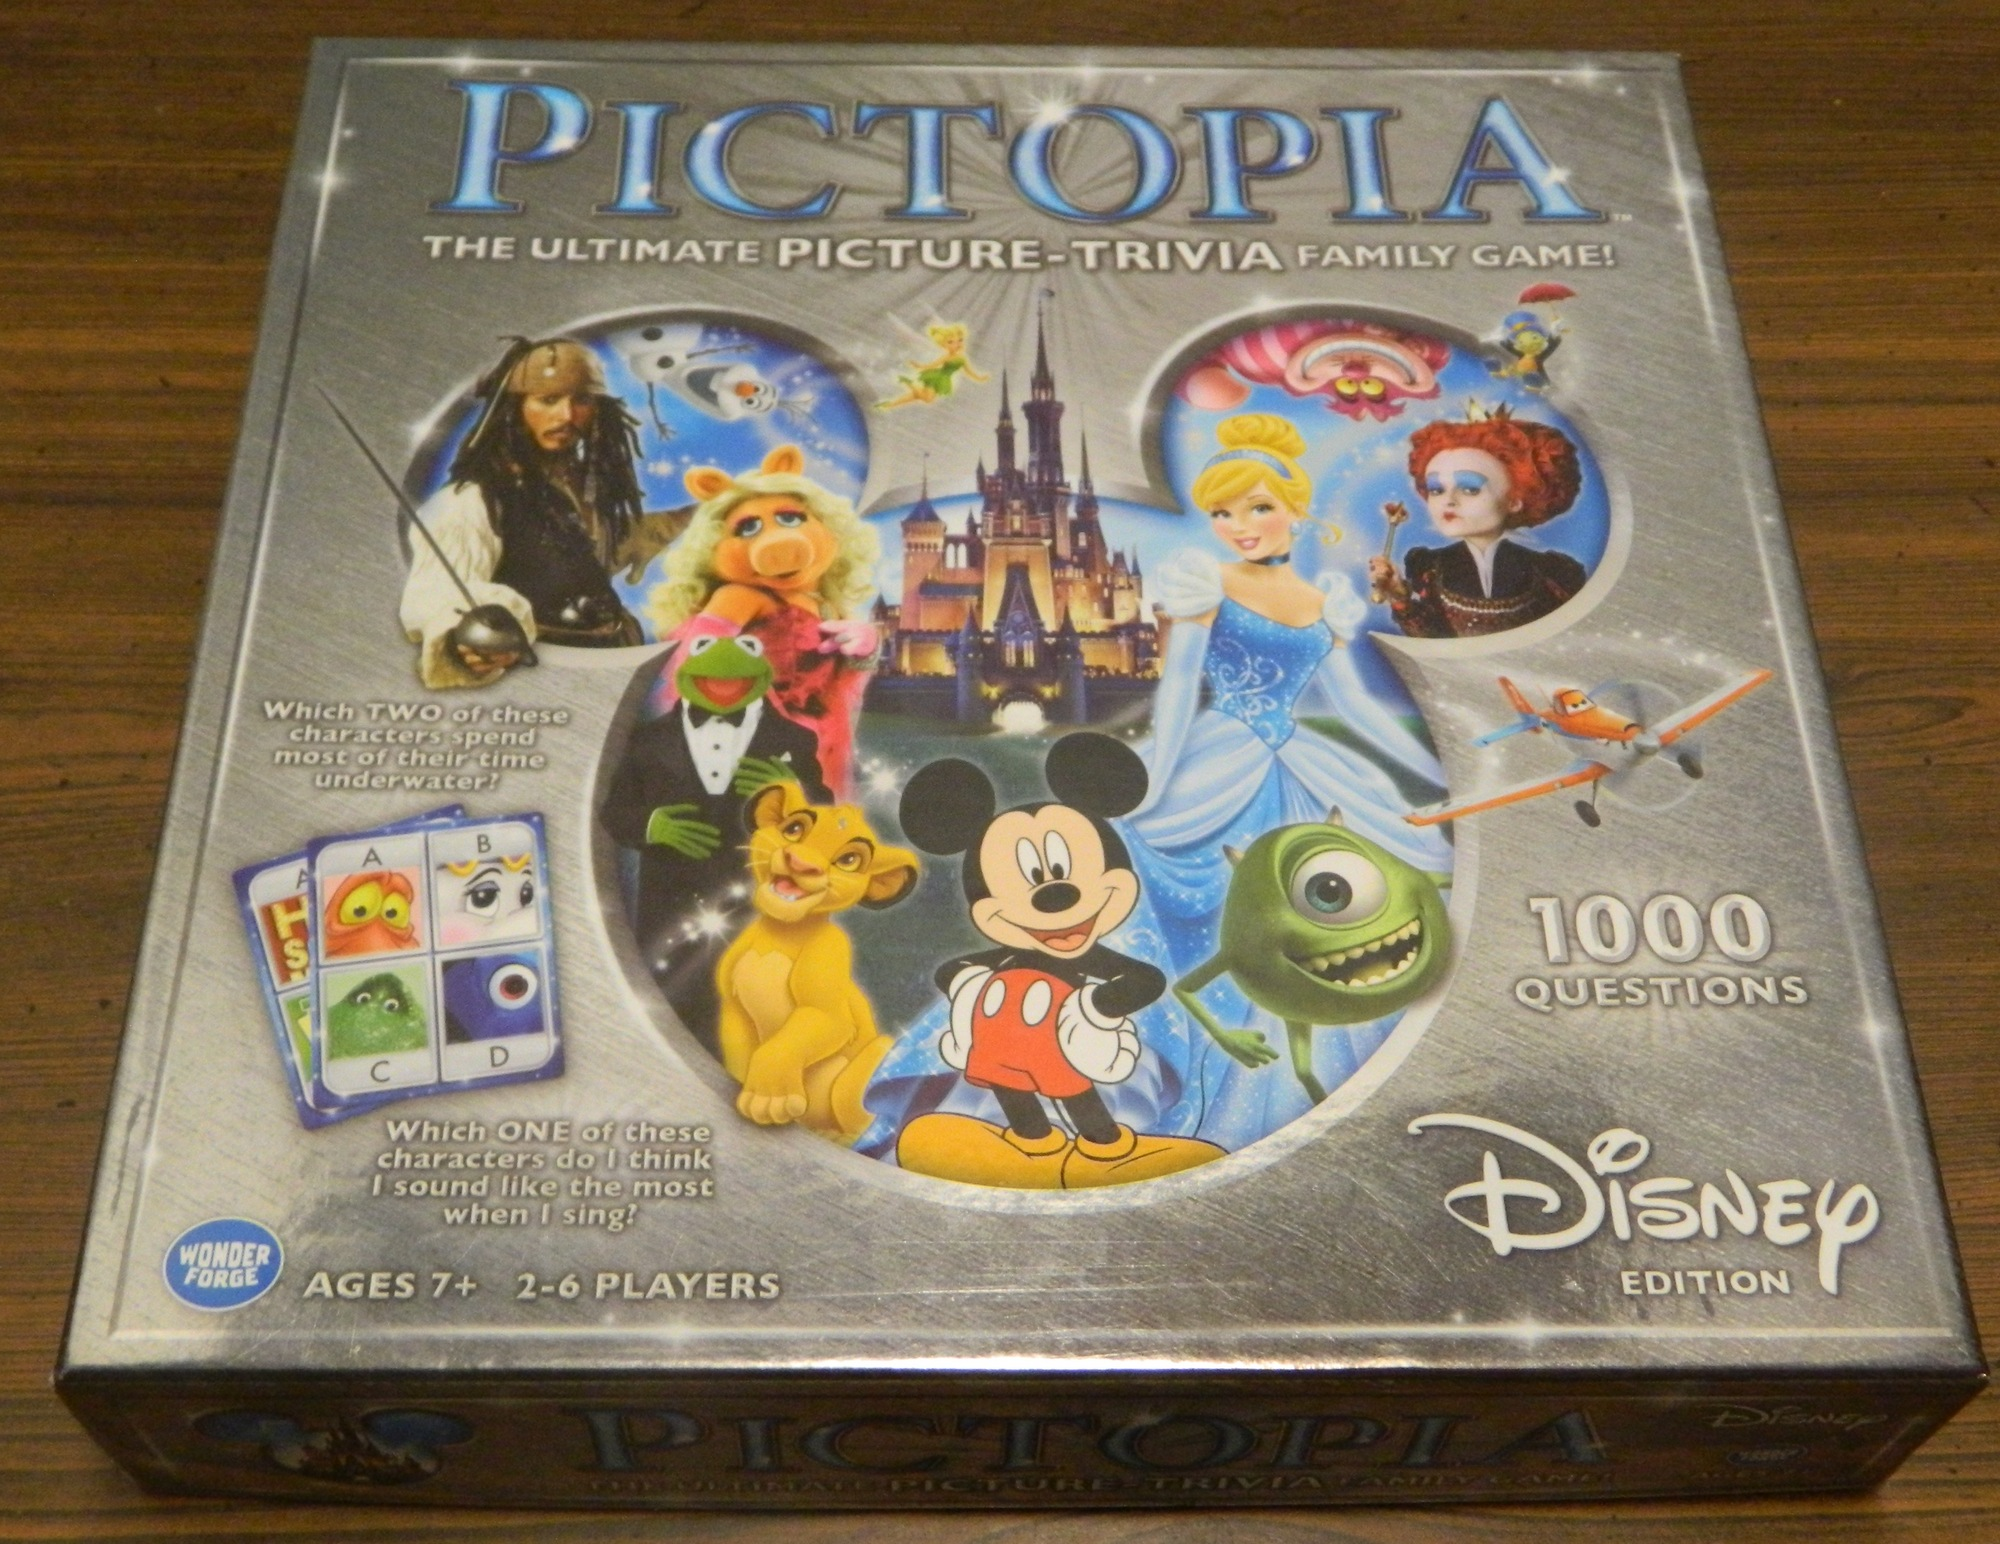 Pictopia Disney Edition Box